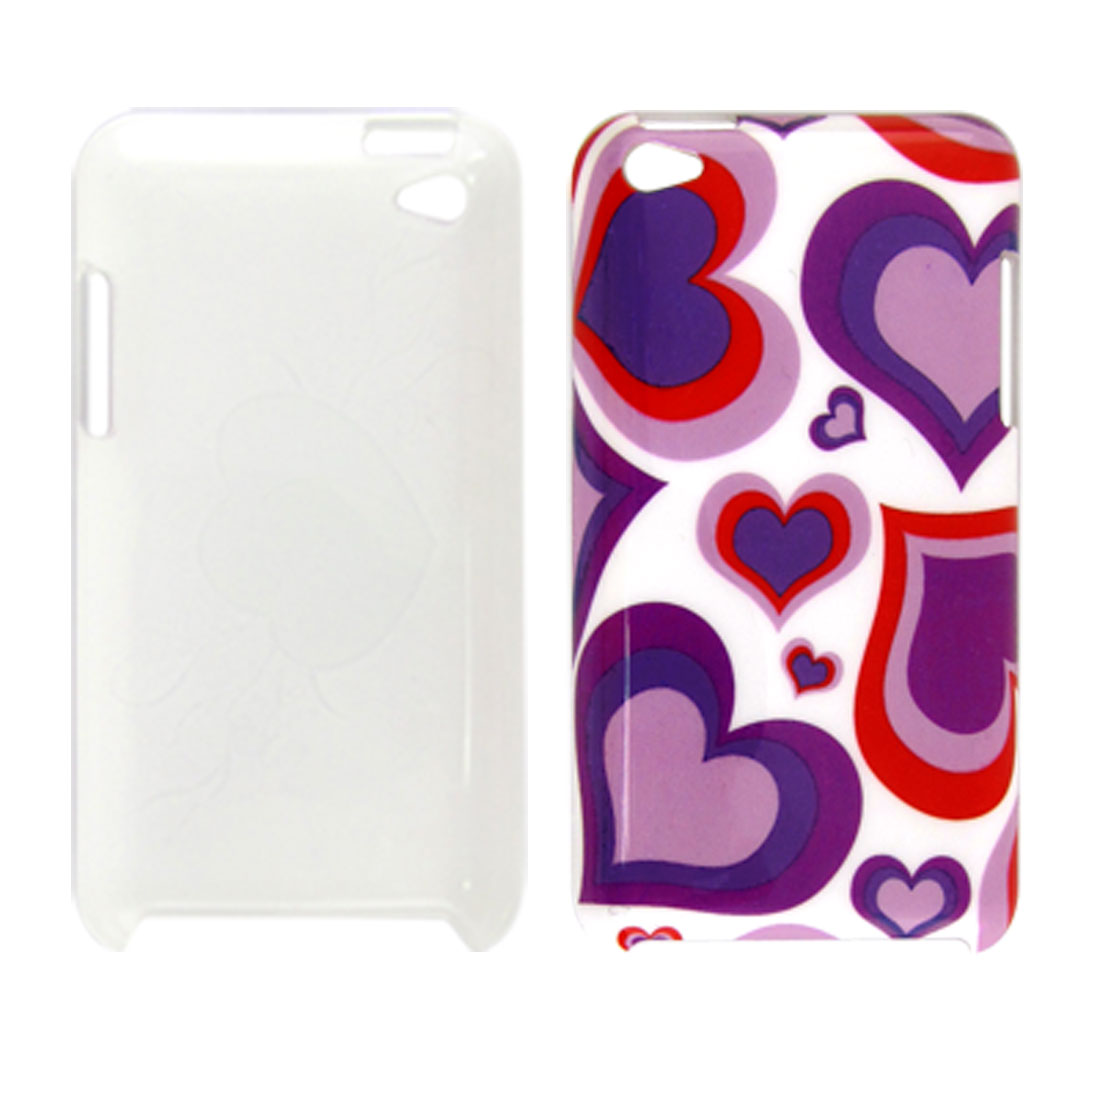 IMD Colors Hearts Plastic Back Case Shell for iPod Touch 4G